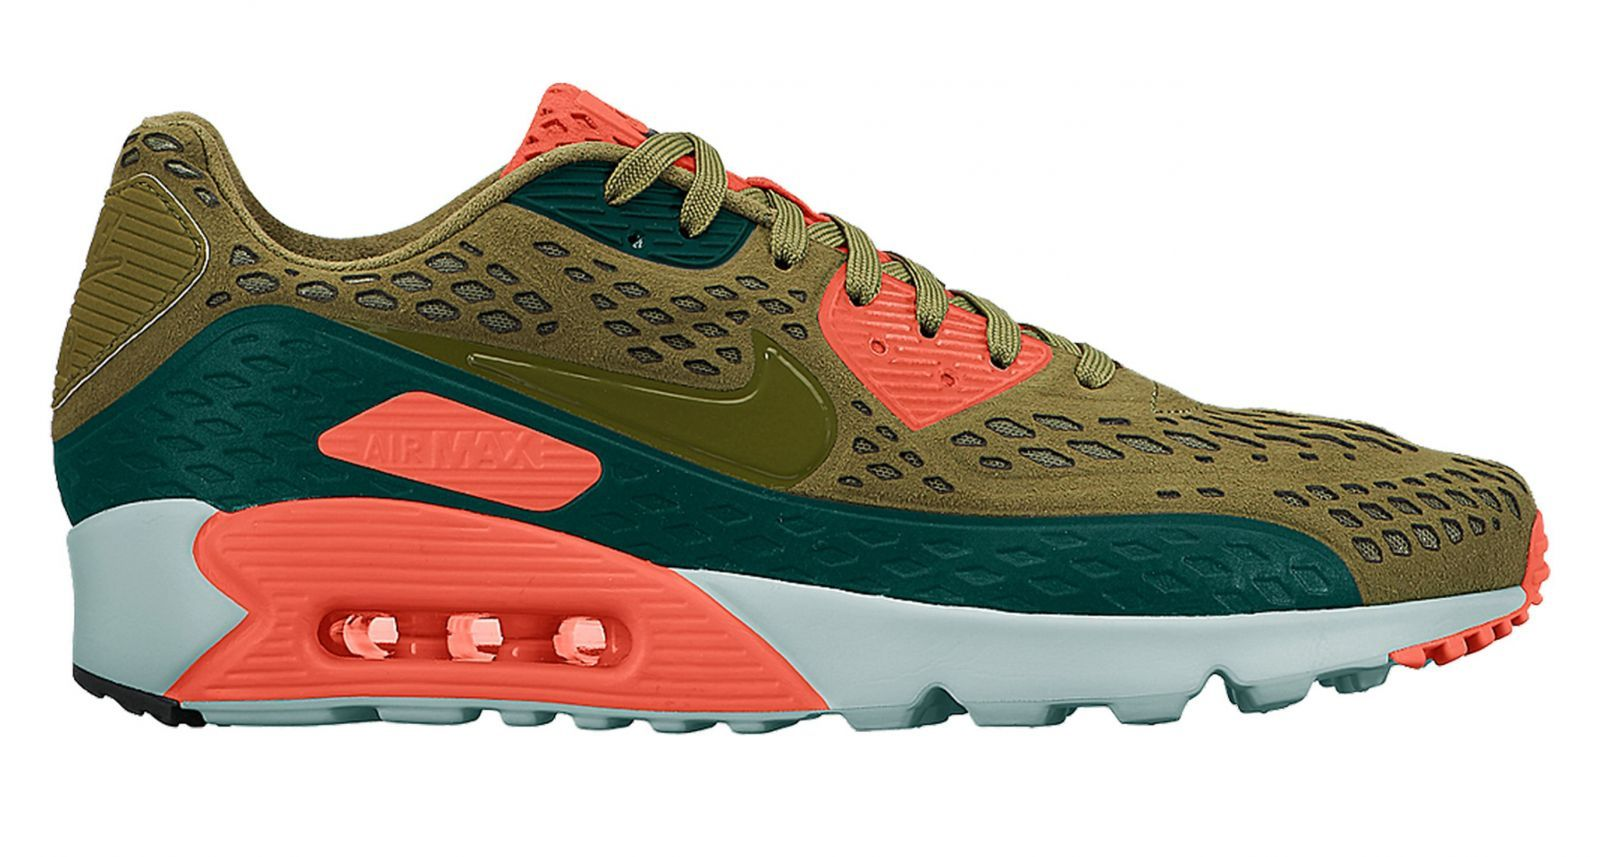 the best attitude ec74e 646ed The Nike Air Max 90 Goes Ultra for its 25th Anniversary